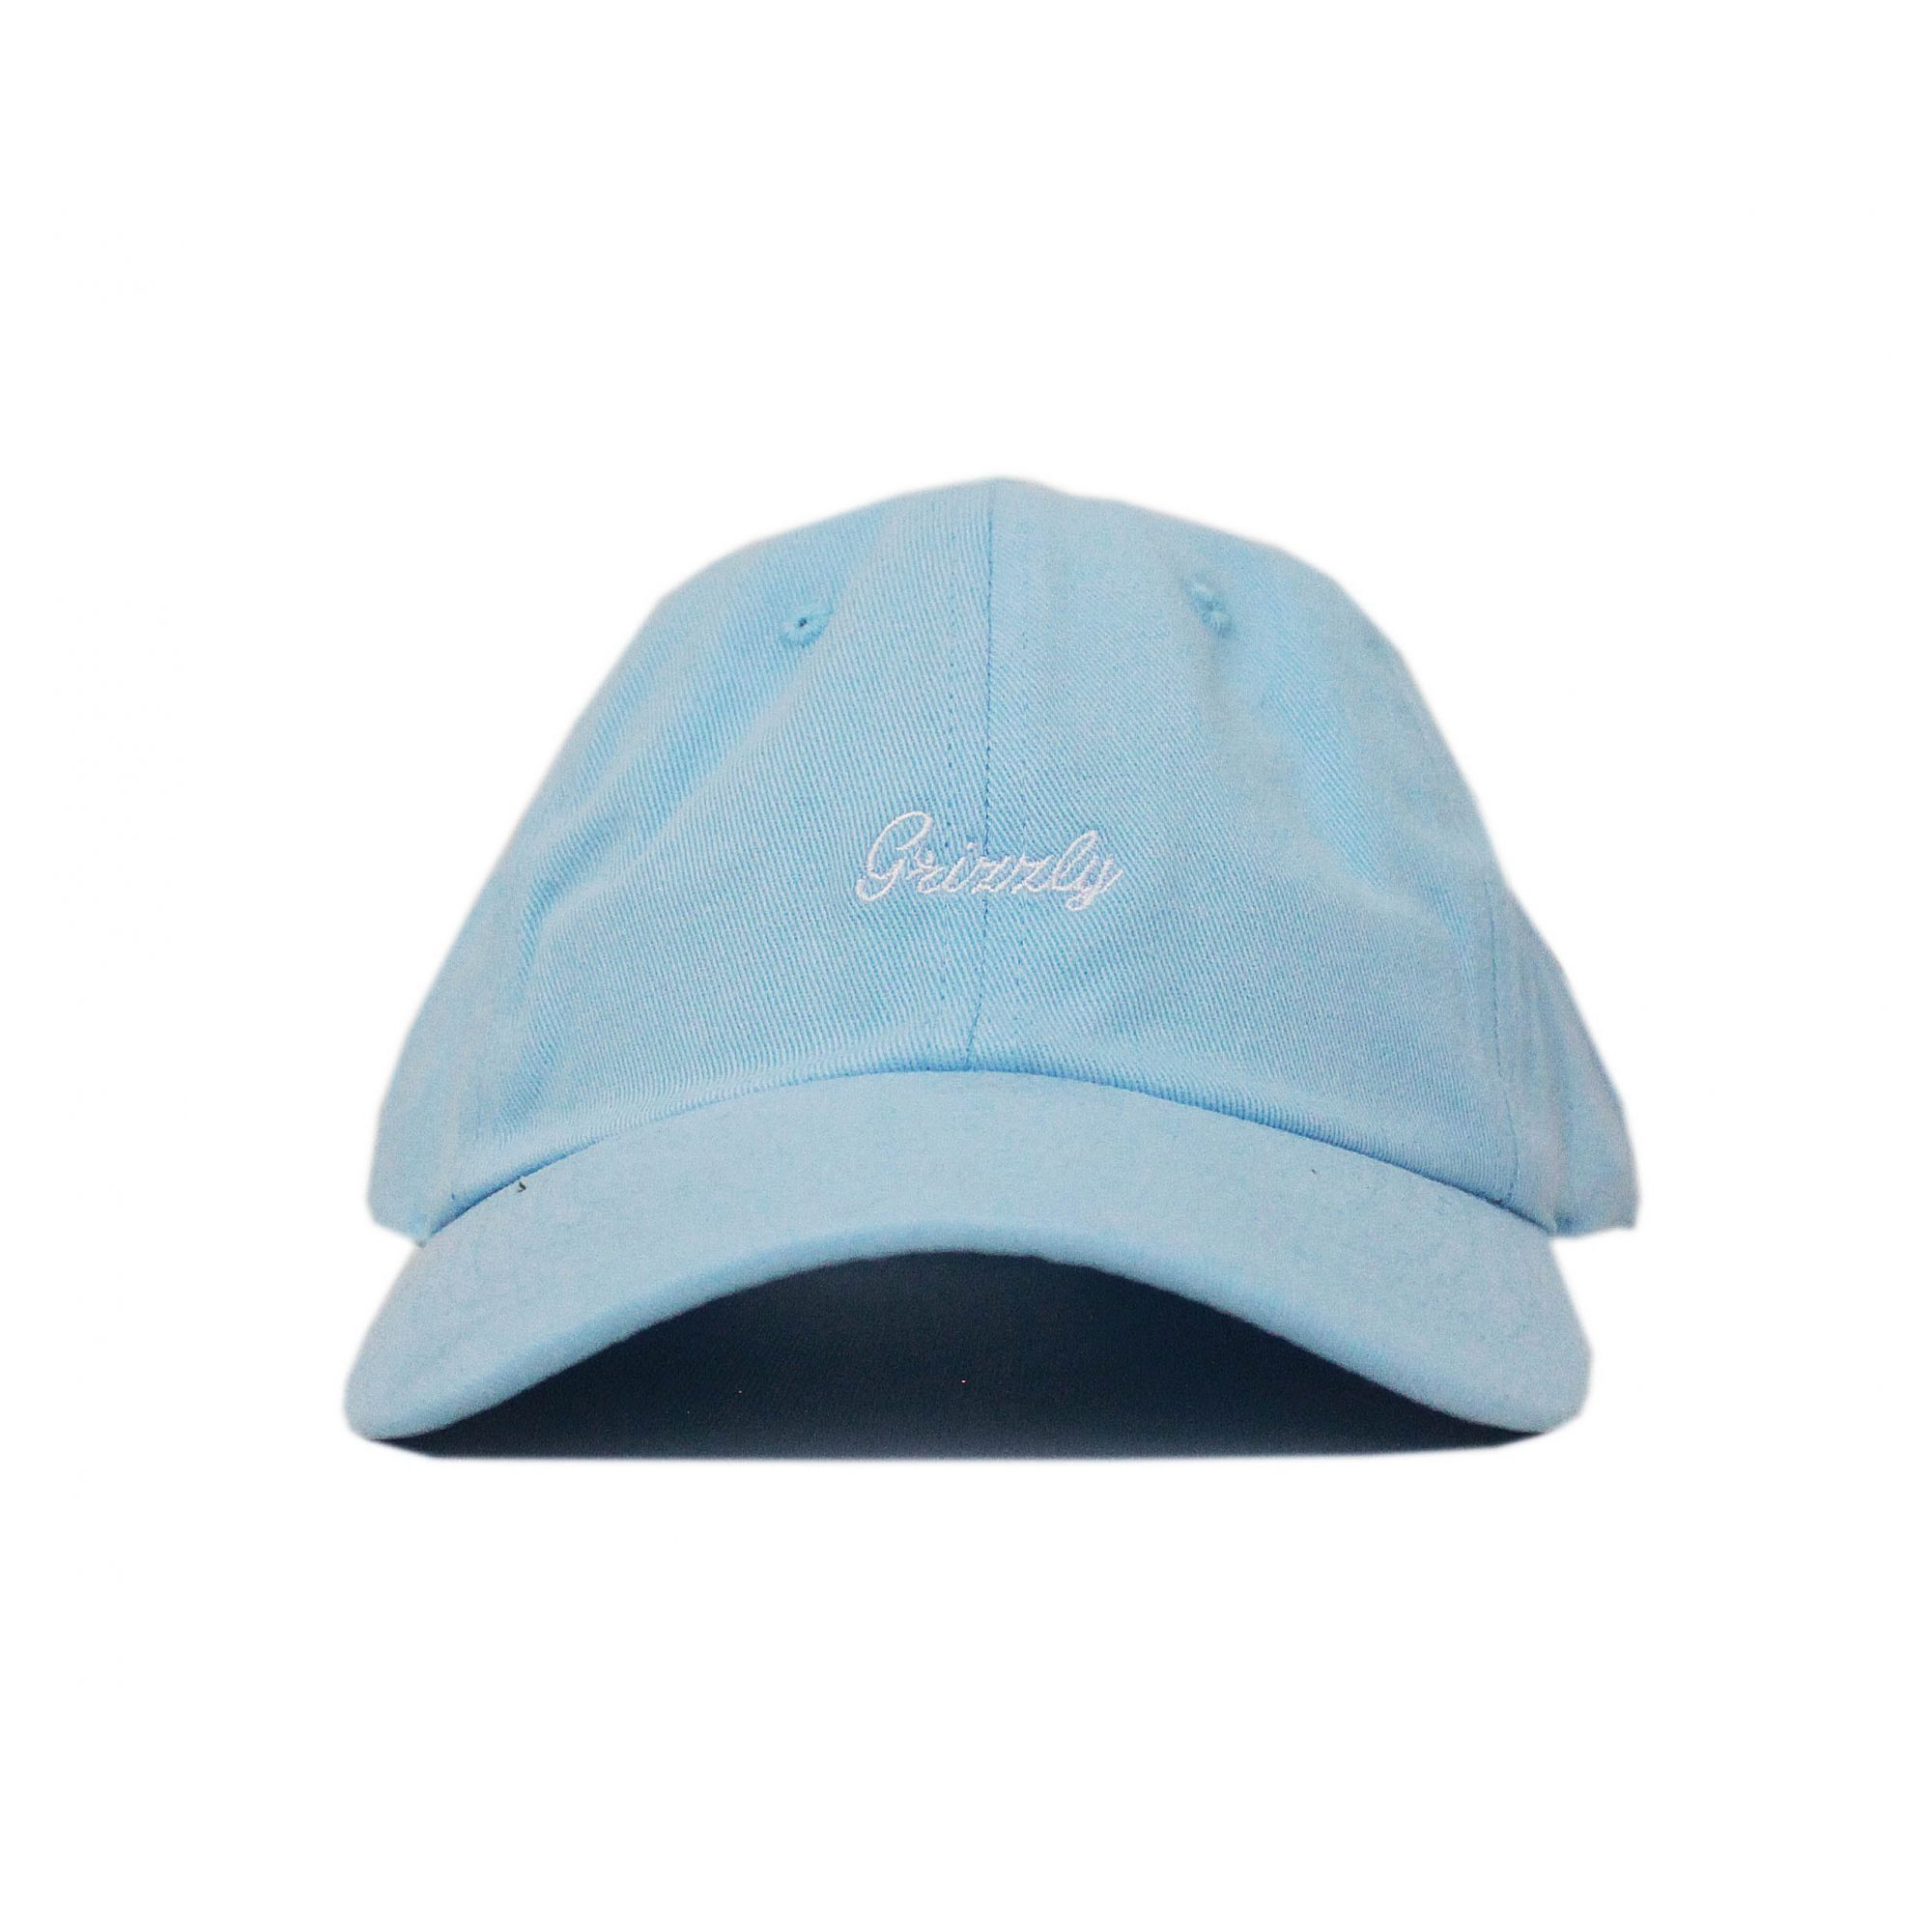 Boné Grizzly Dad Hat Late To The Game Azul Bebê